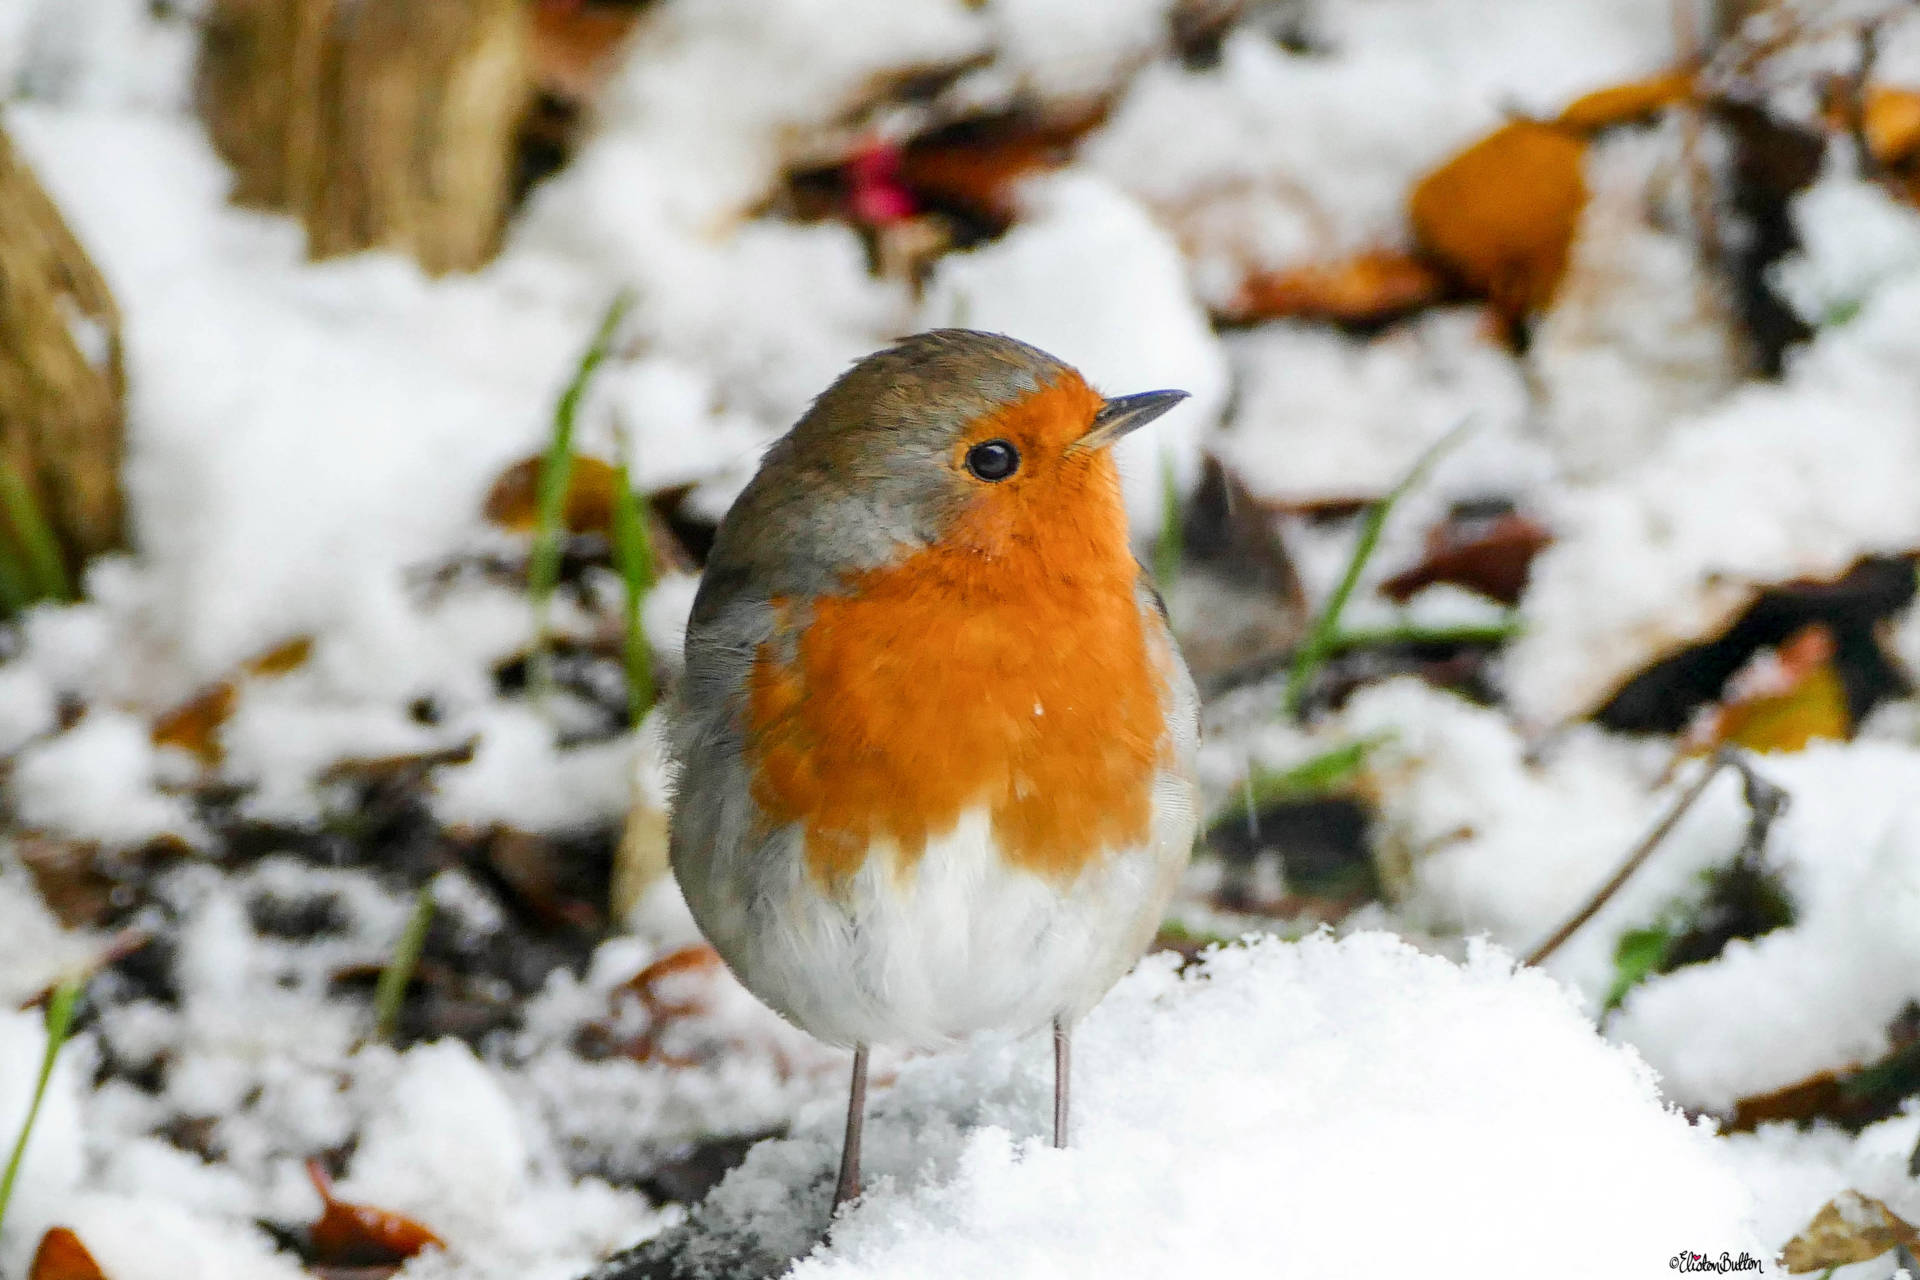 Robin Bird in the Snow by Eliston Button - For the Love of…Christmas at www.elistonbutton.com - Eliston Button - That Crafty Kid – Art, Design, Craft & Adventure.